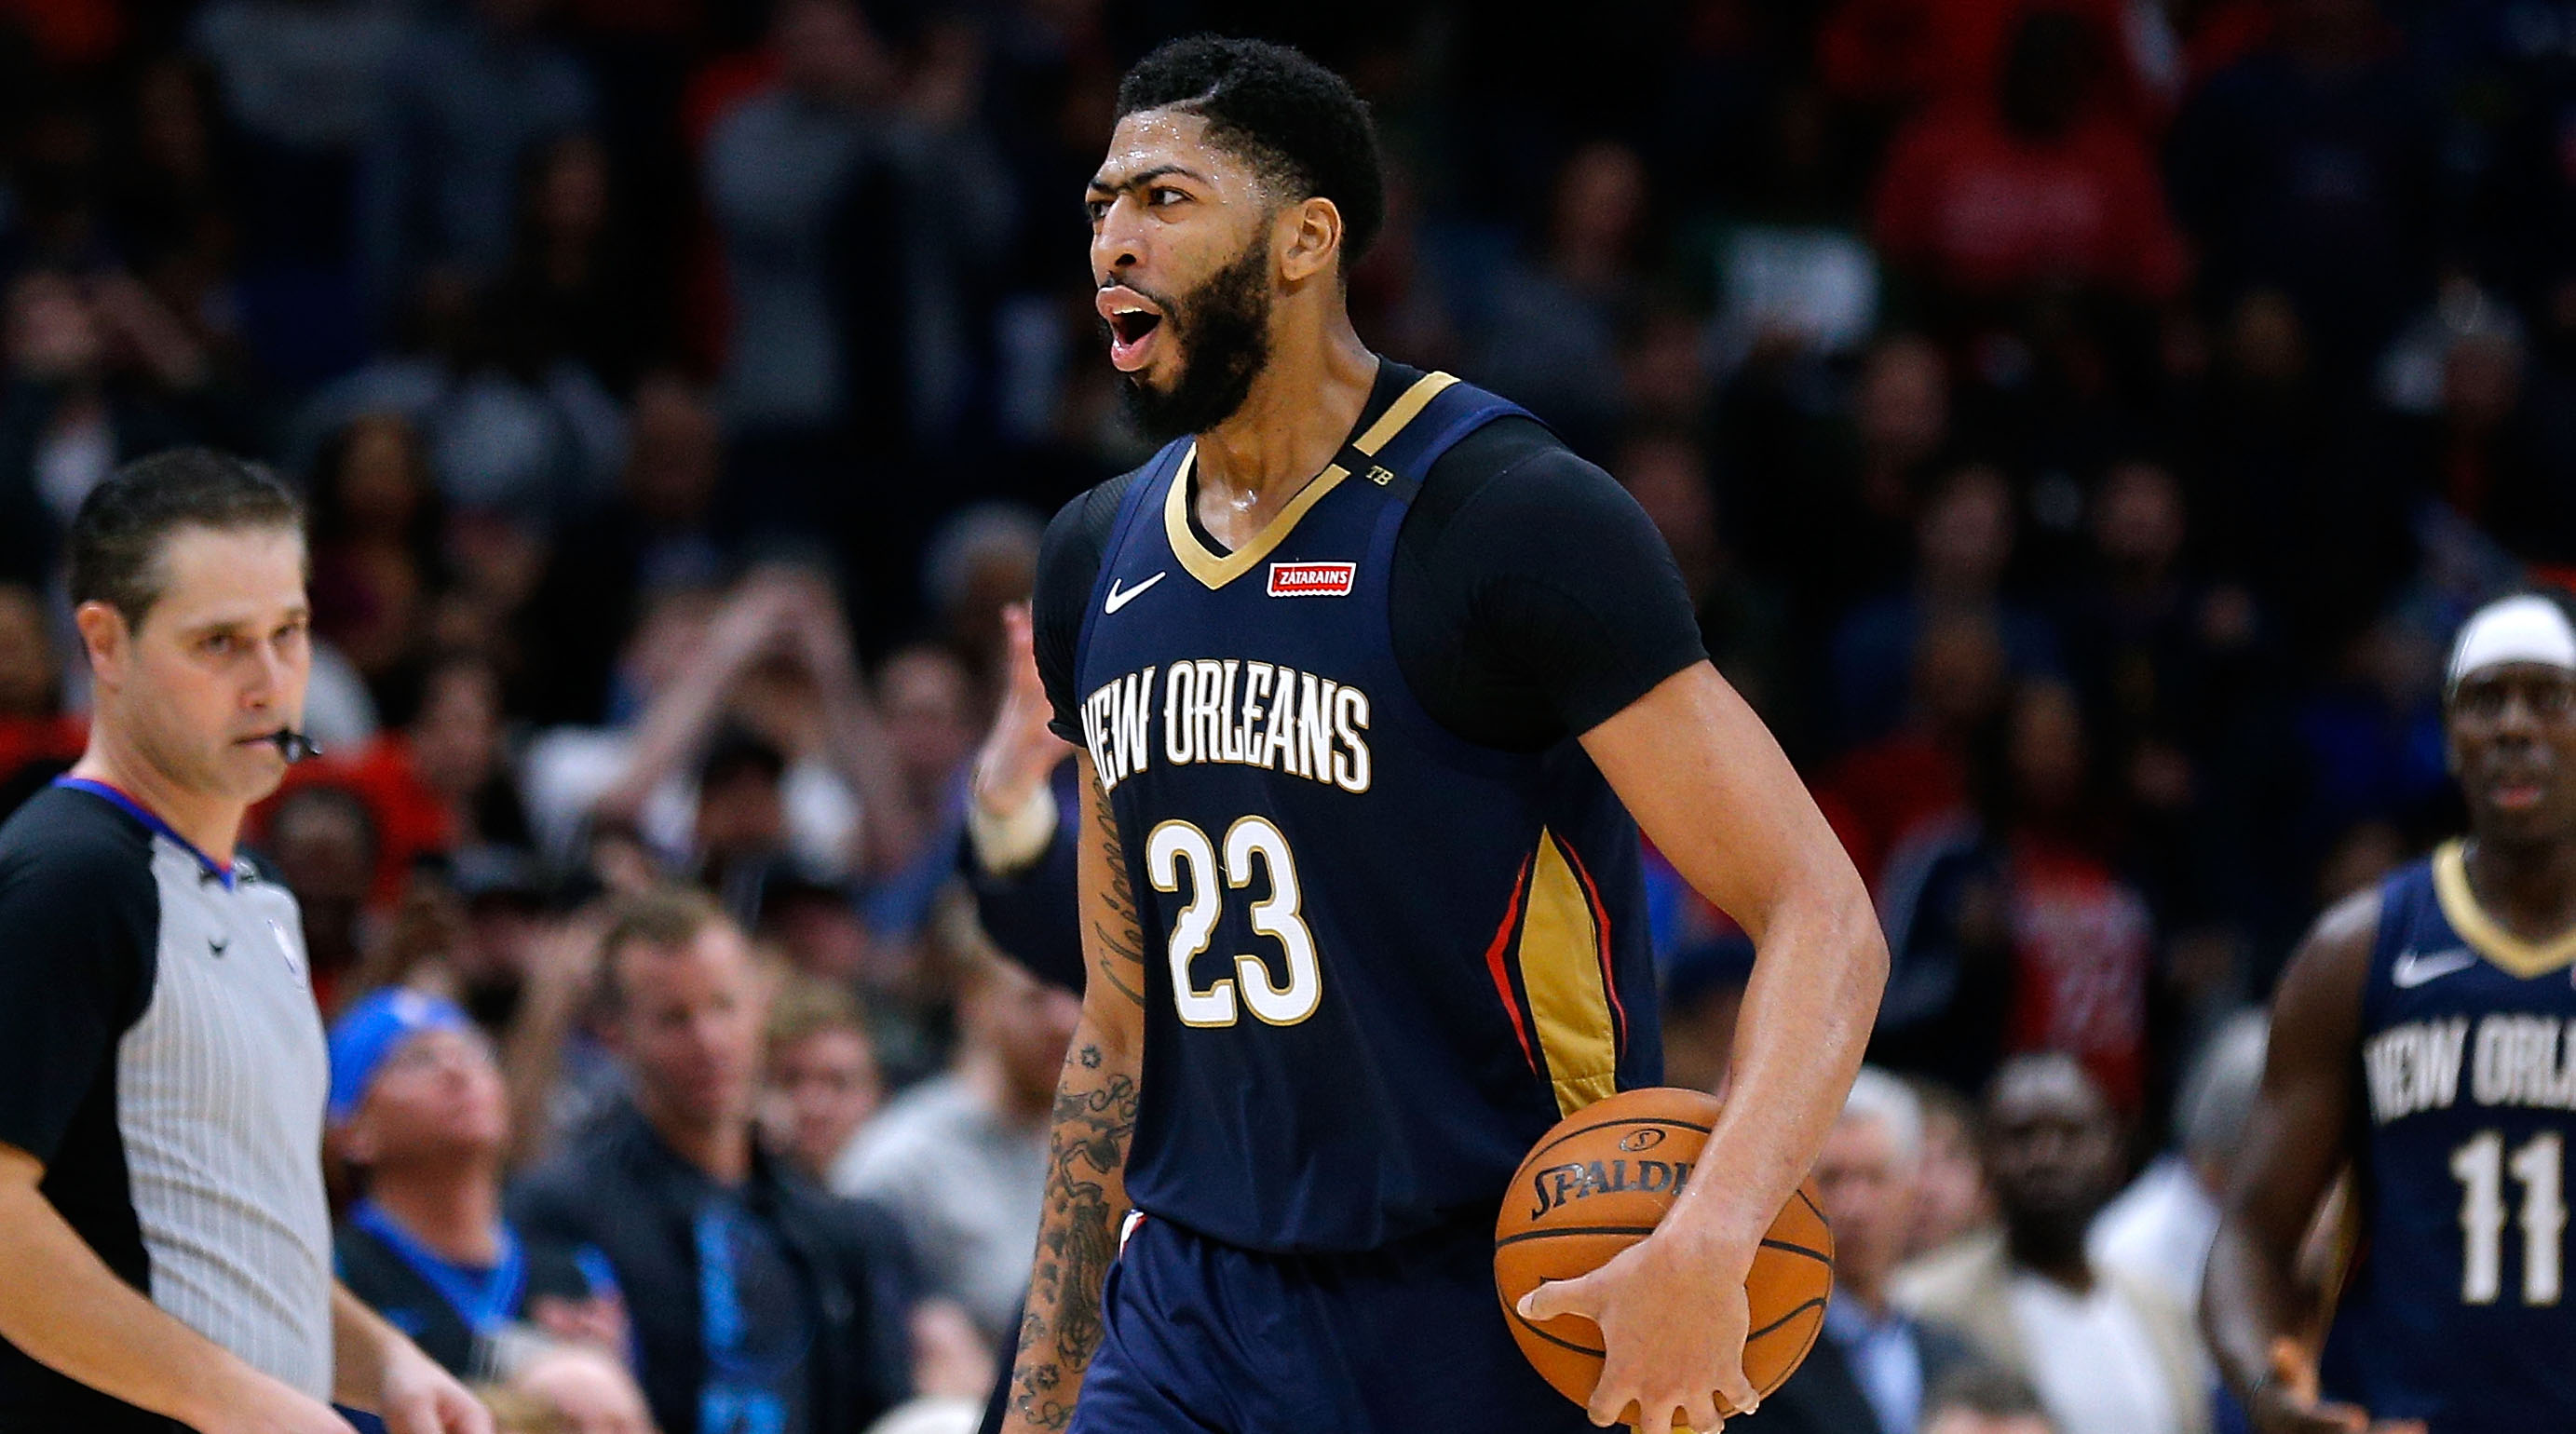 NEW ORLEANS, LOUISIANA - DECEMBER 28: Anthony Davis #23 of the New Orleans Pelicans reacts during a game against the Dallas Mavericks at the Smoothie King Center on December 28, 2018 in New Orleans, Louisiana. NOTE TO USER: User expressly acknowledges and agrees that, by downloading and or using this photograph, User is consenting to the terms and conditions of the Getty Images License Agreement.  (Photo by Jonathan Bachman/Getty Images)